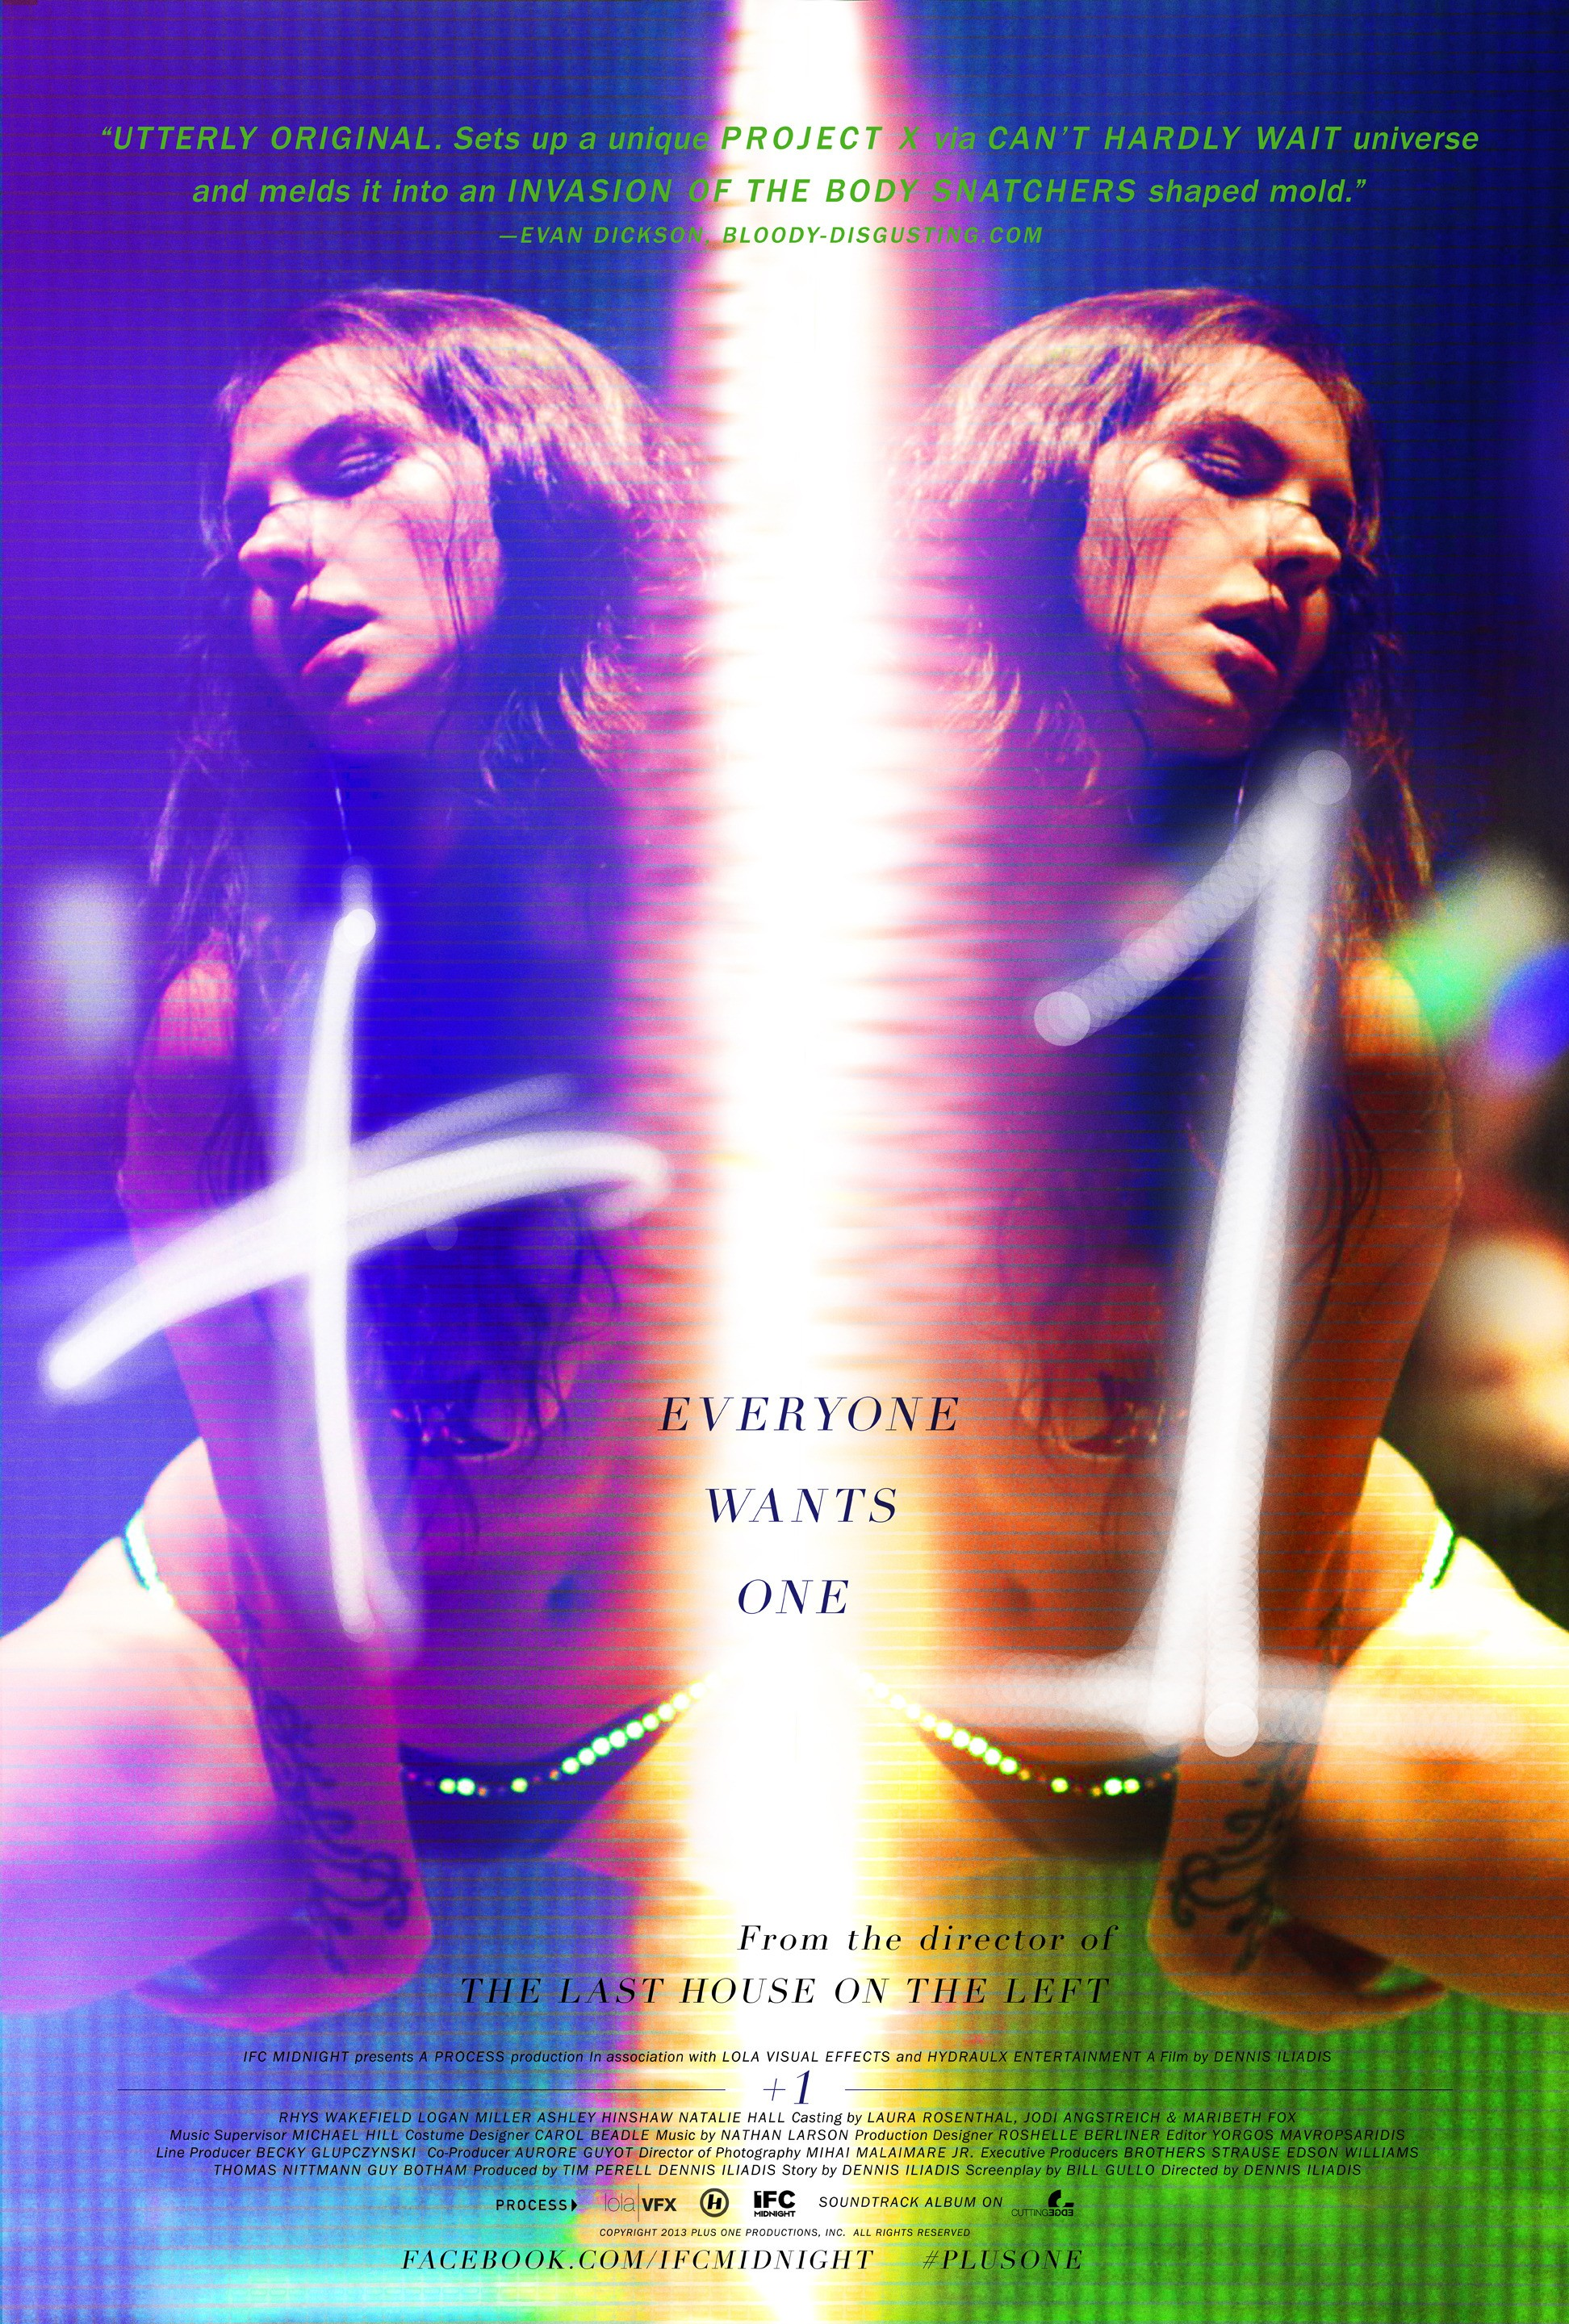 +1 (Plus One)-Official Poster Banner PROMO POSTER-23AGOSTO2013